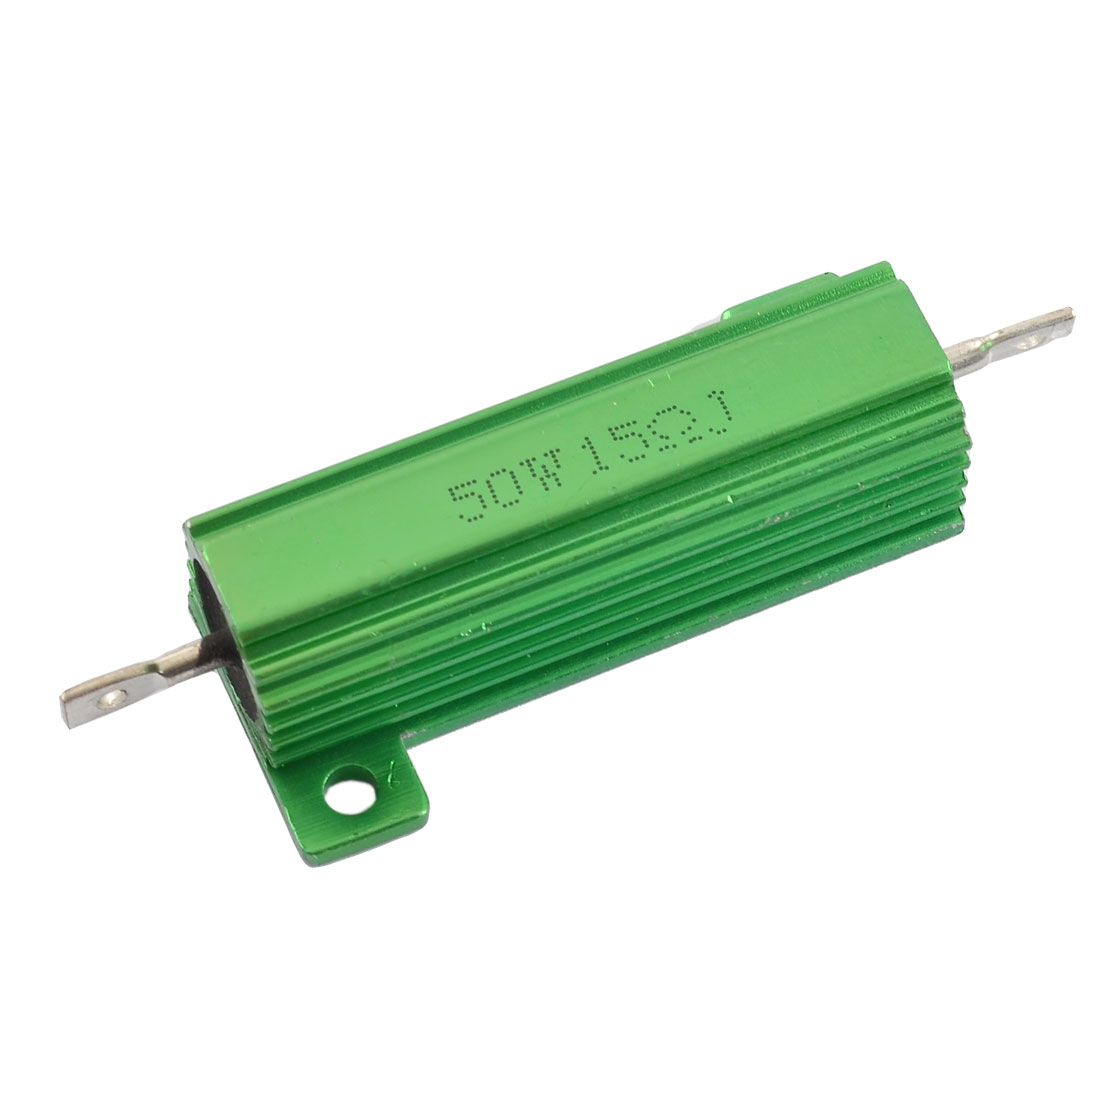 Aluminum Shell 50W Watt 15 Ohm 5% Chassis Mounted Wirewound Resistor